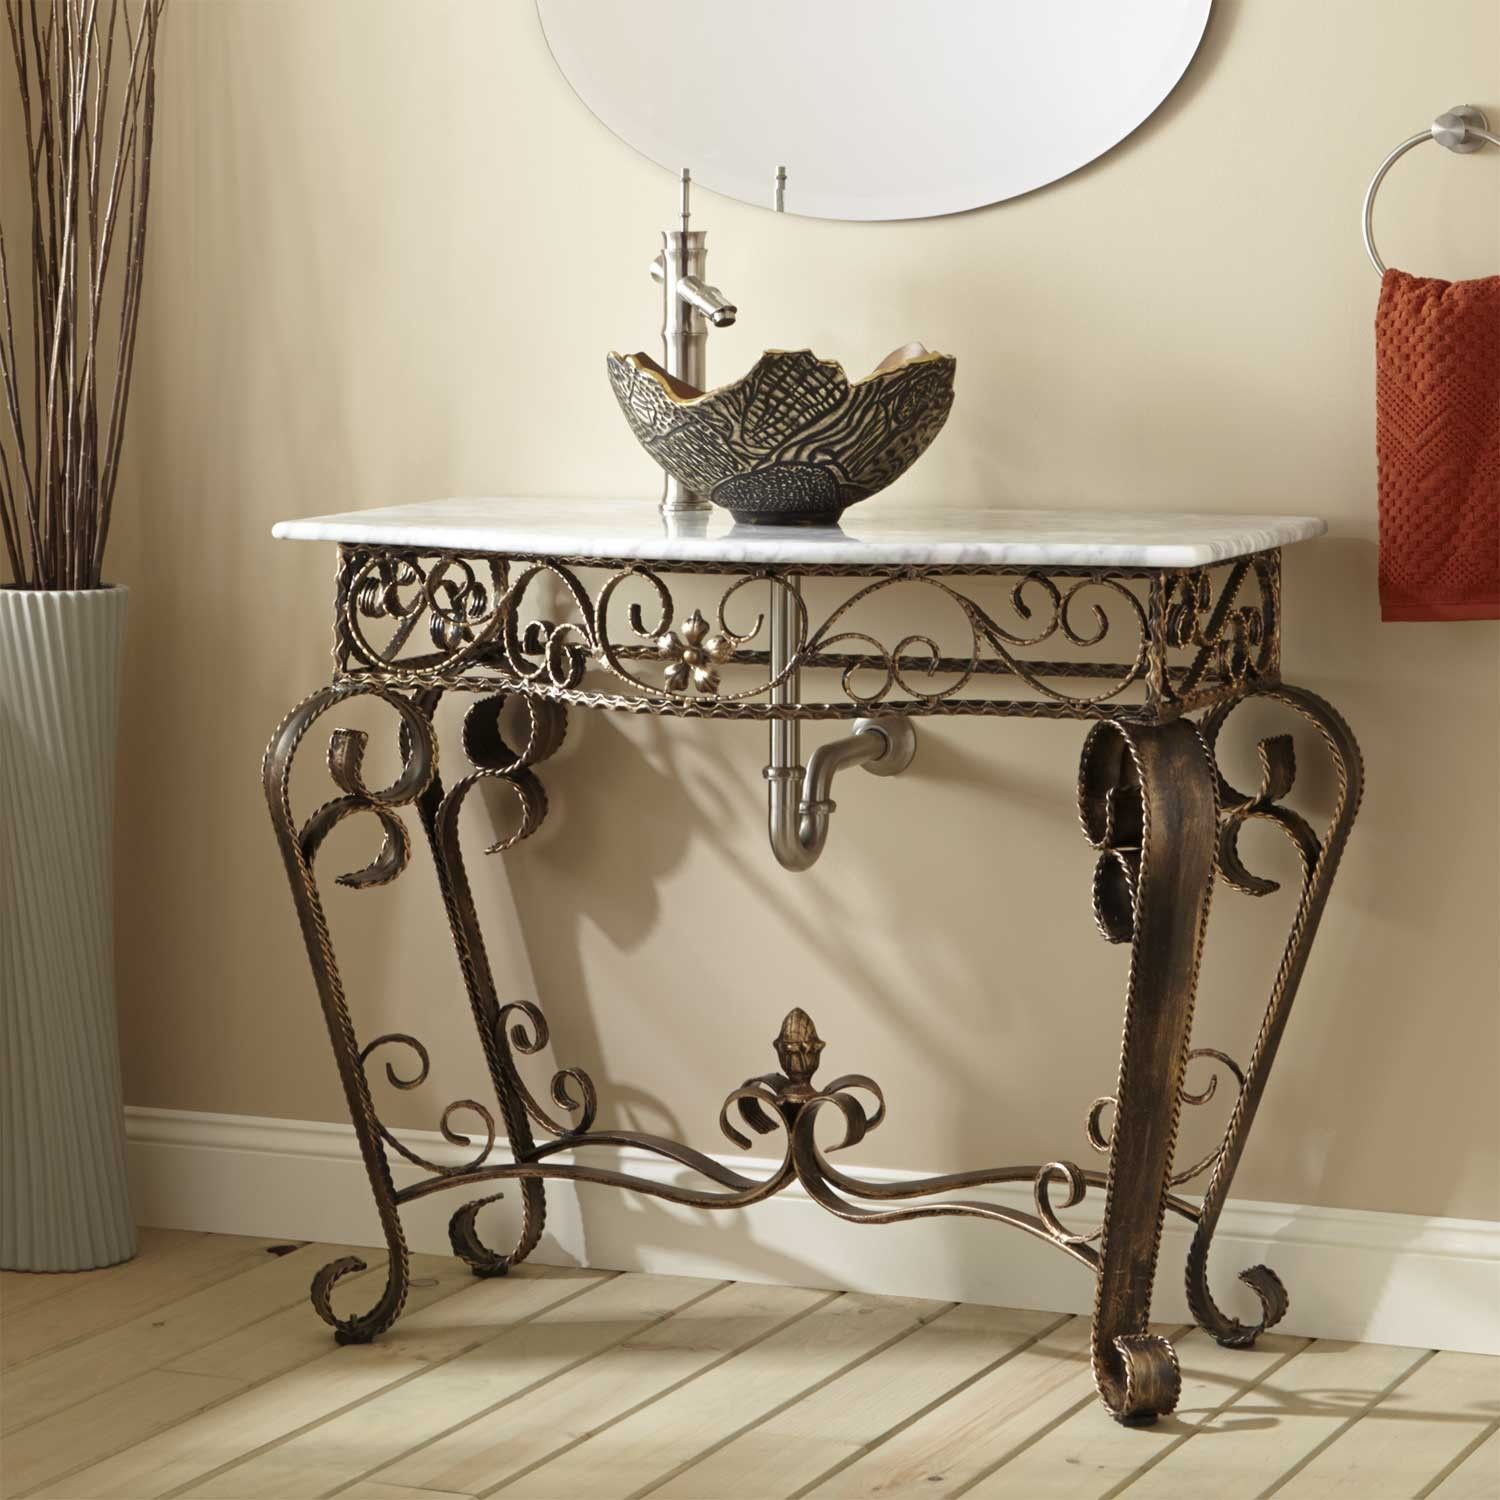 Vanna Wrought Iron Console Vanity For Vessel Sink With Marble Top Vessel Sink Marble Top And